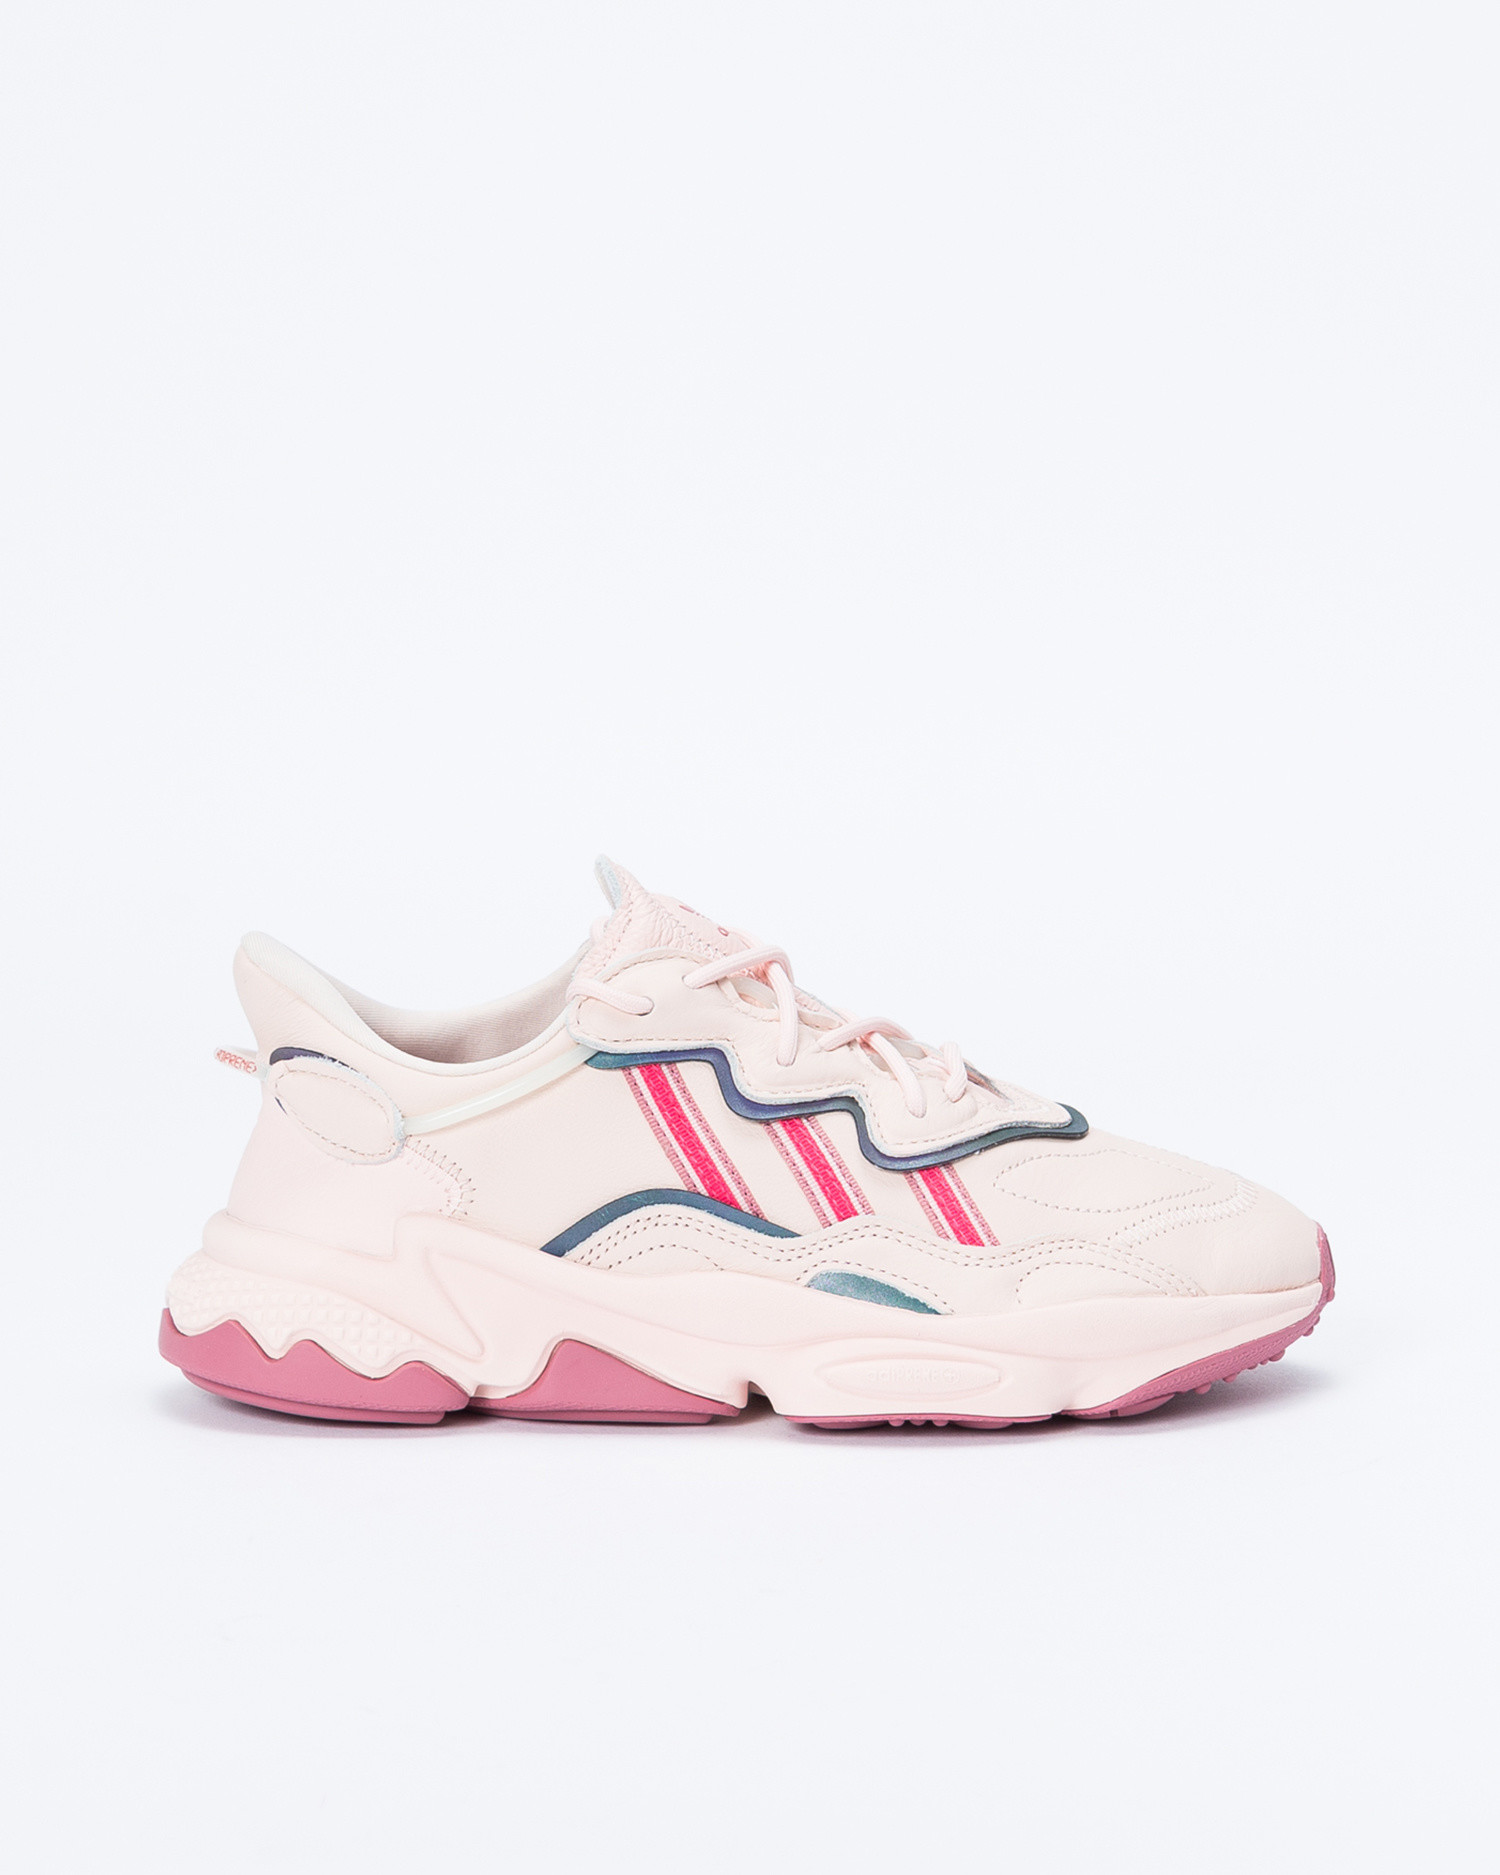 Adidas Ozweego w Core Icey Pink/Real Pink/Trace Maroon